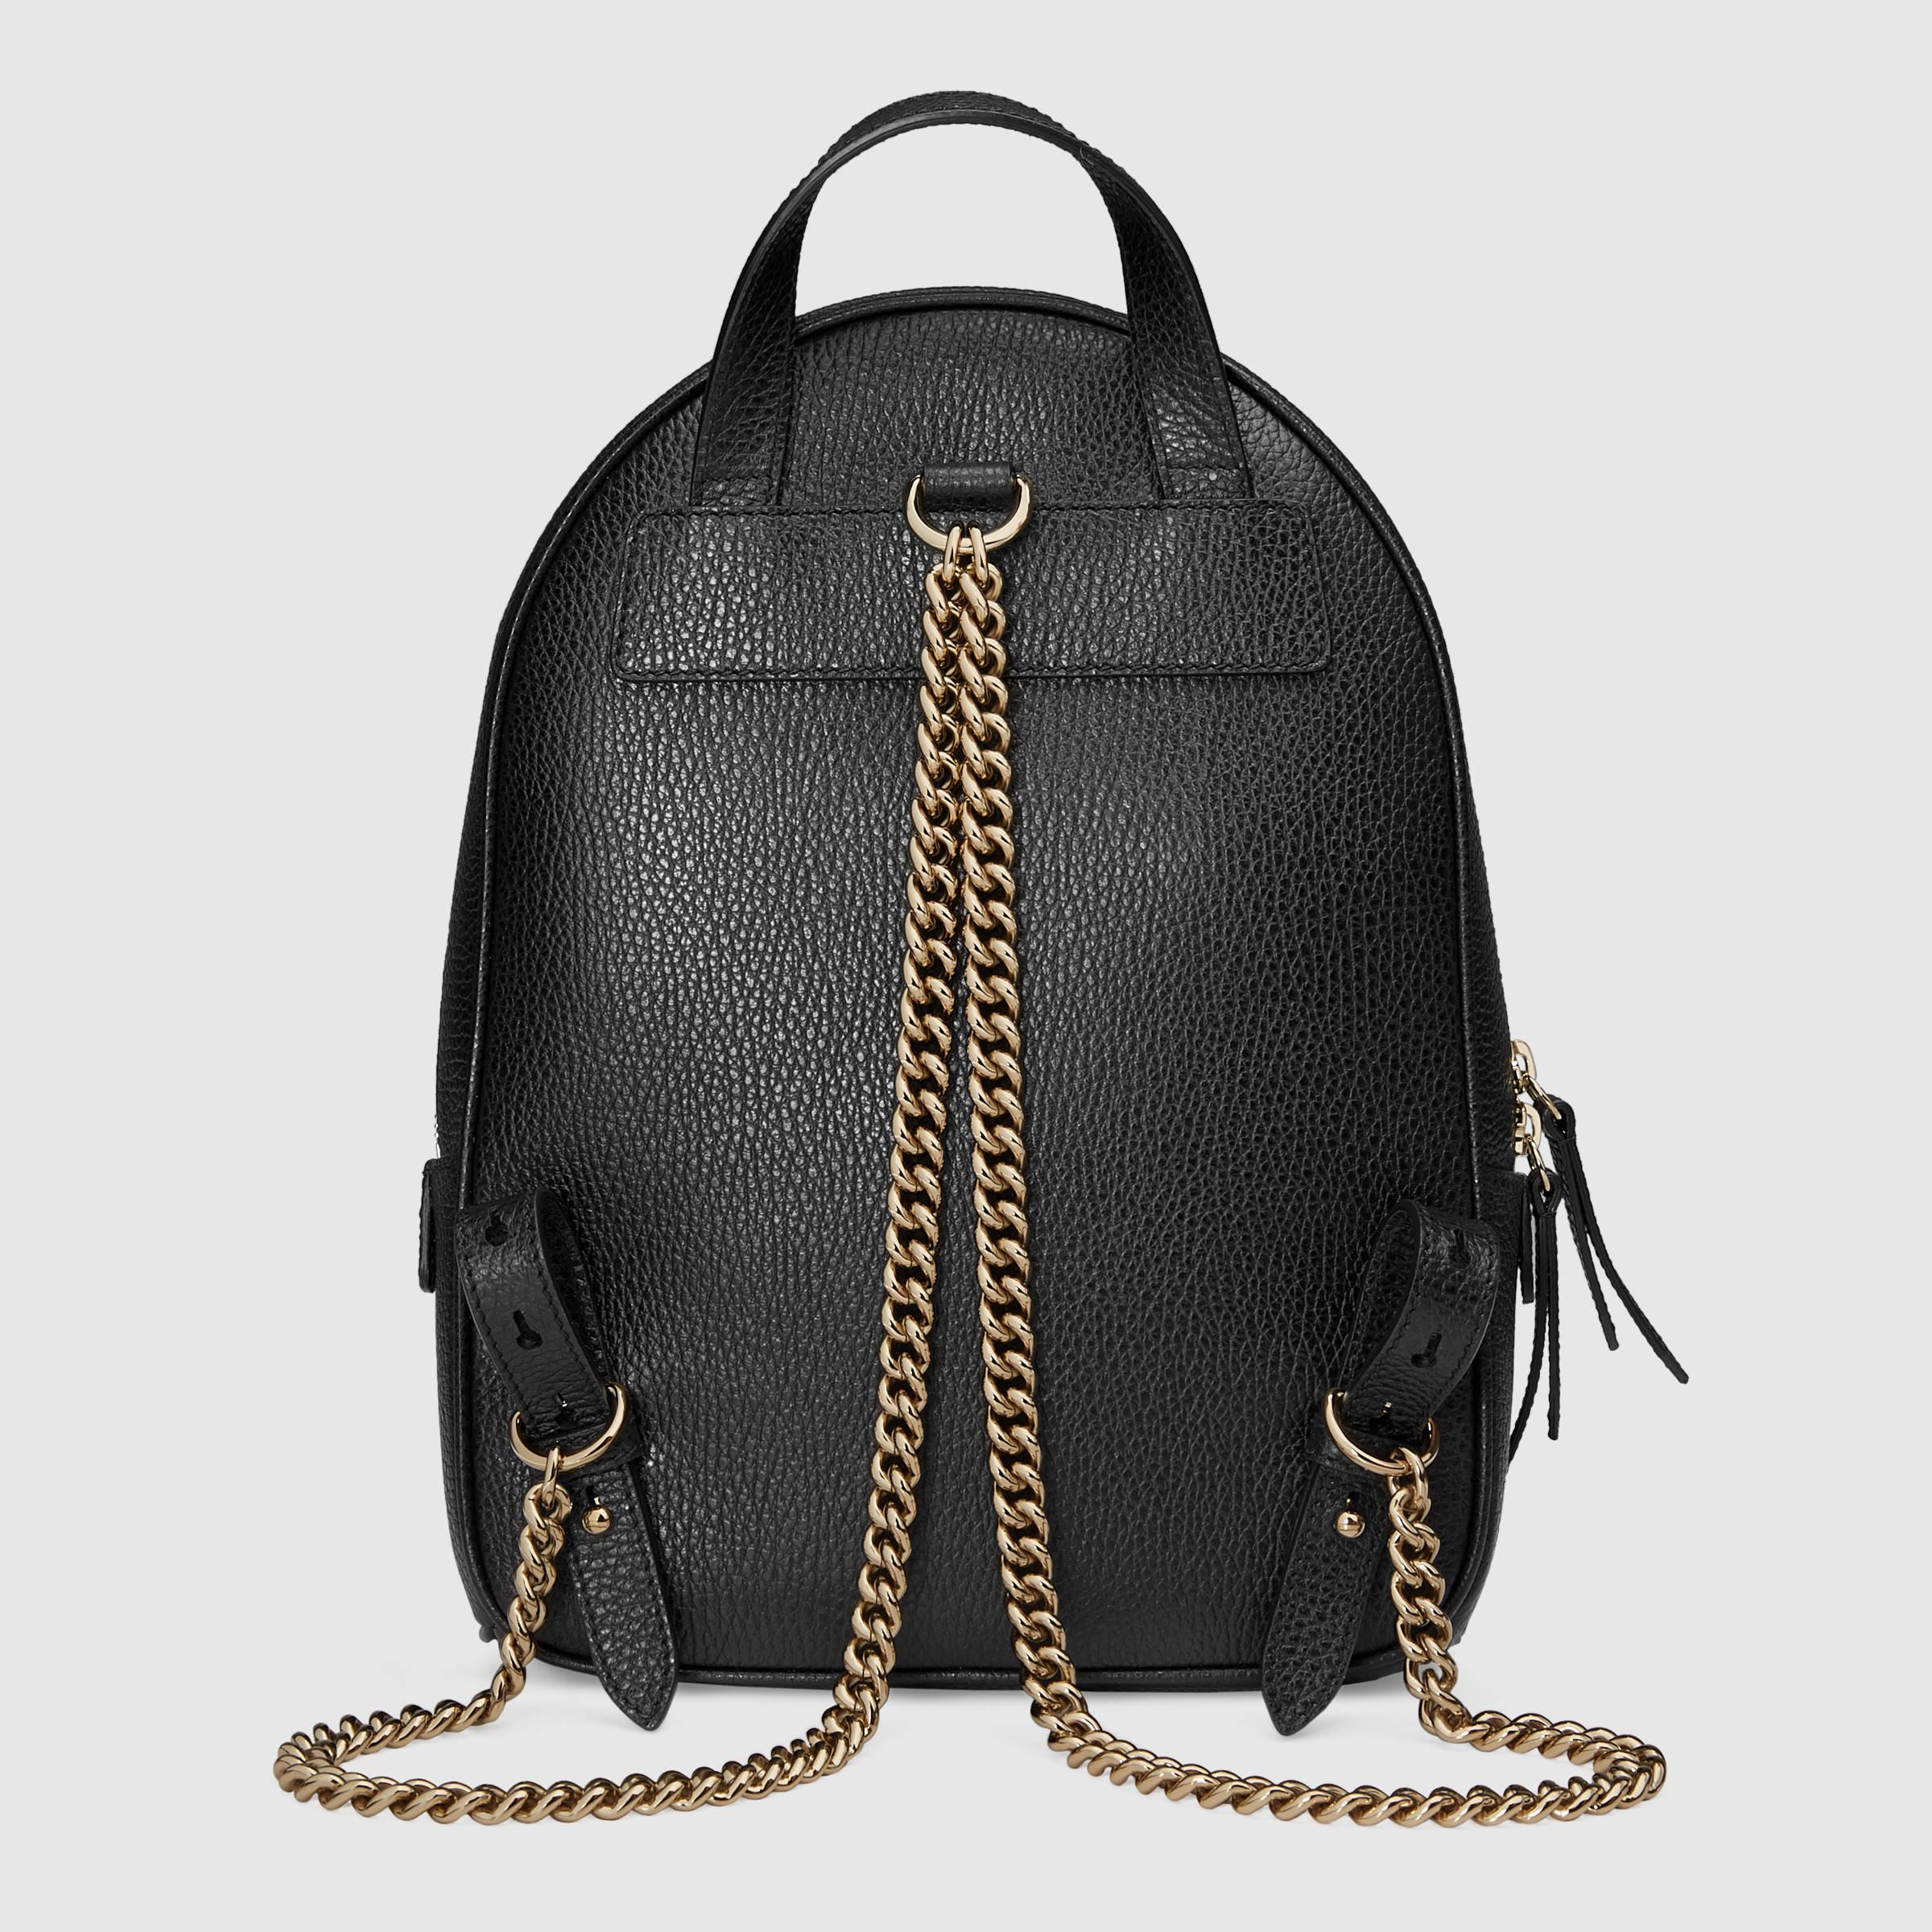 8675bd157 Gucci Soho Leather Chain Backpack in Black - Lyst